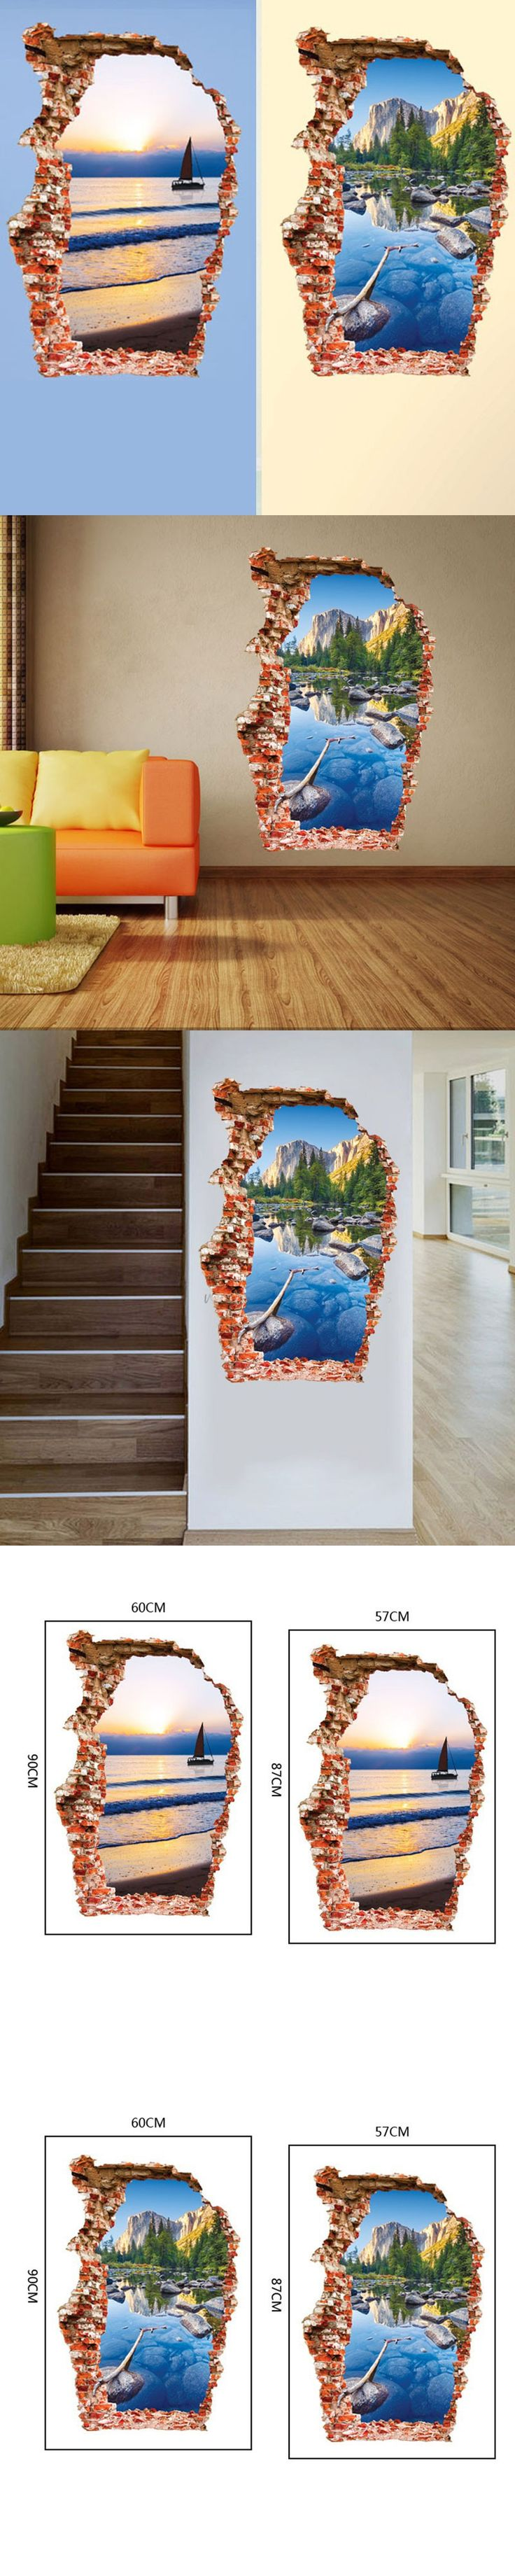 Fashion nature 3D sticker Wall Sticker 60*90CM brook green hill mural Home Decor wall decals for kids room landscape poster $5.65